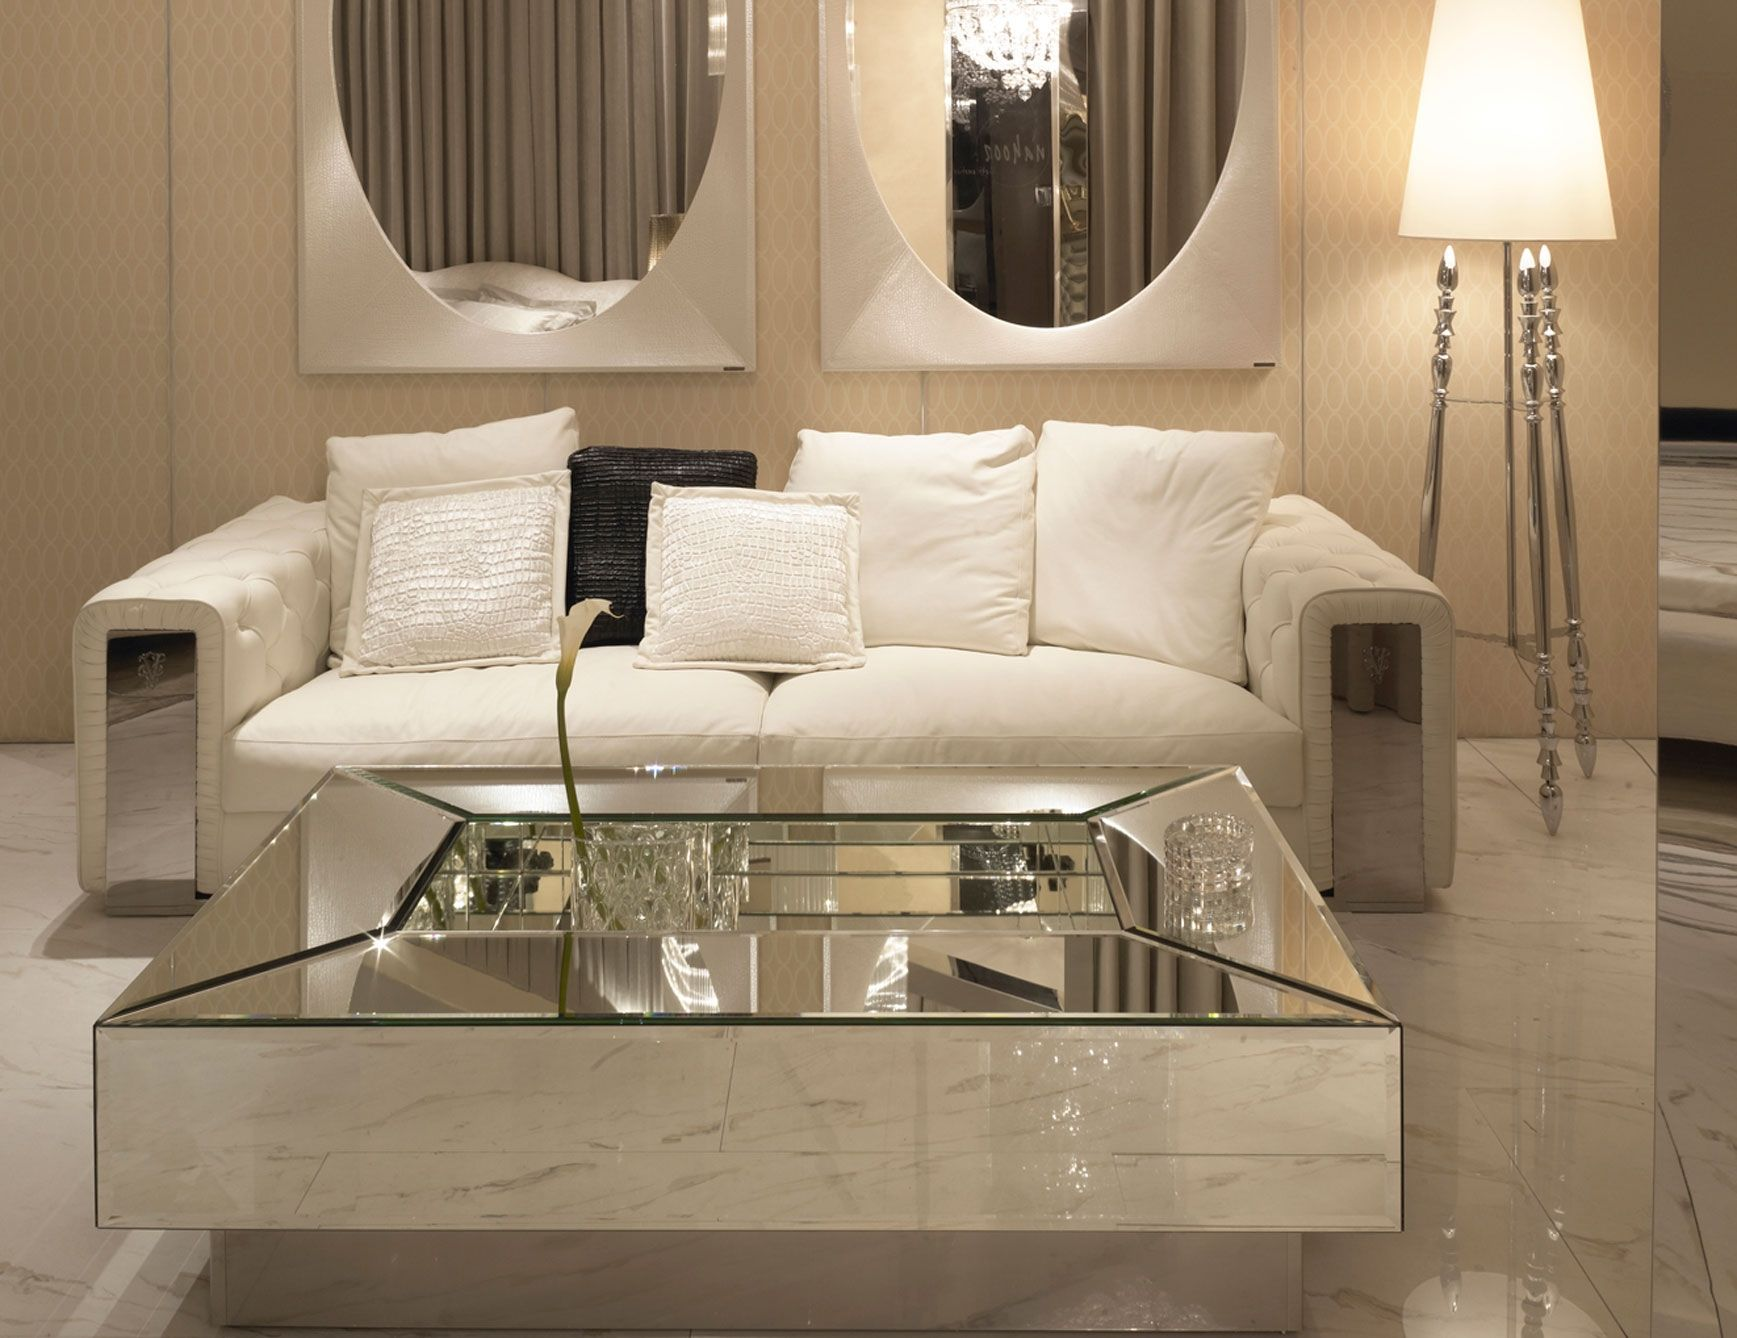 Mesmerizing mirrored coffee table with glass and wood for Living room coffee table